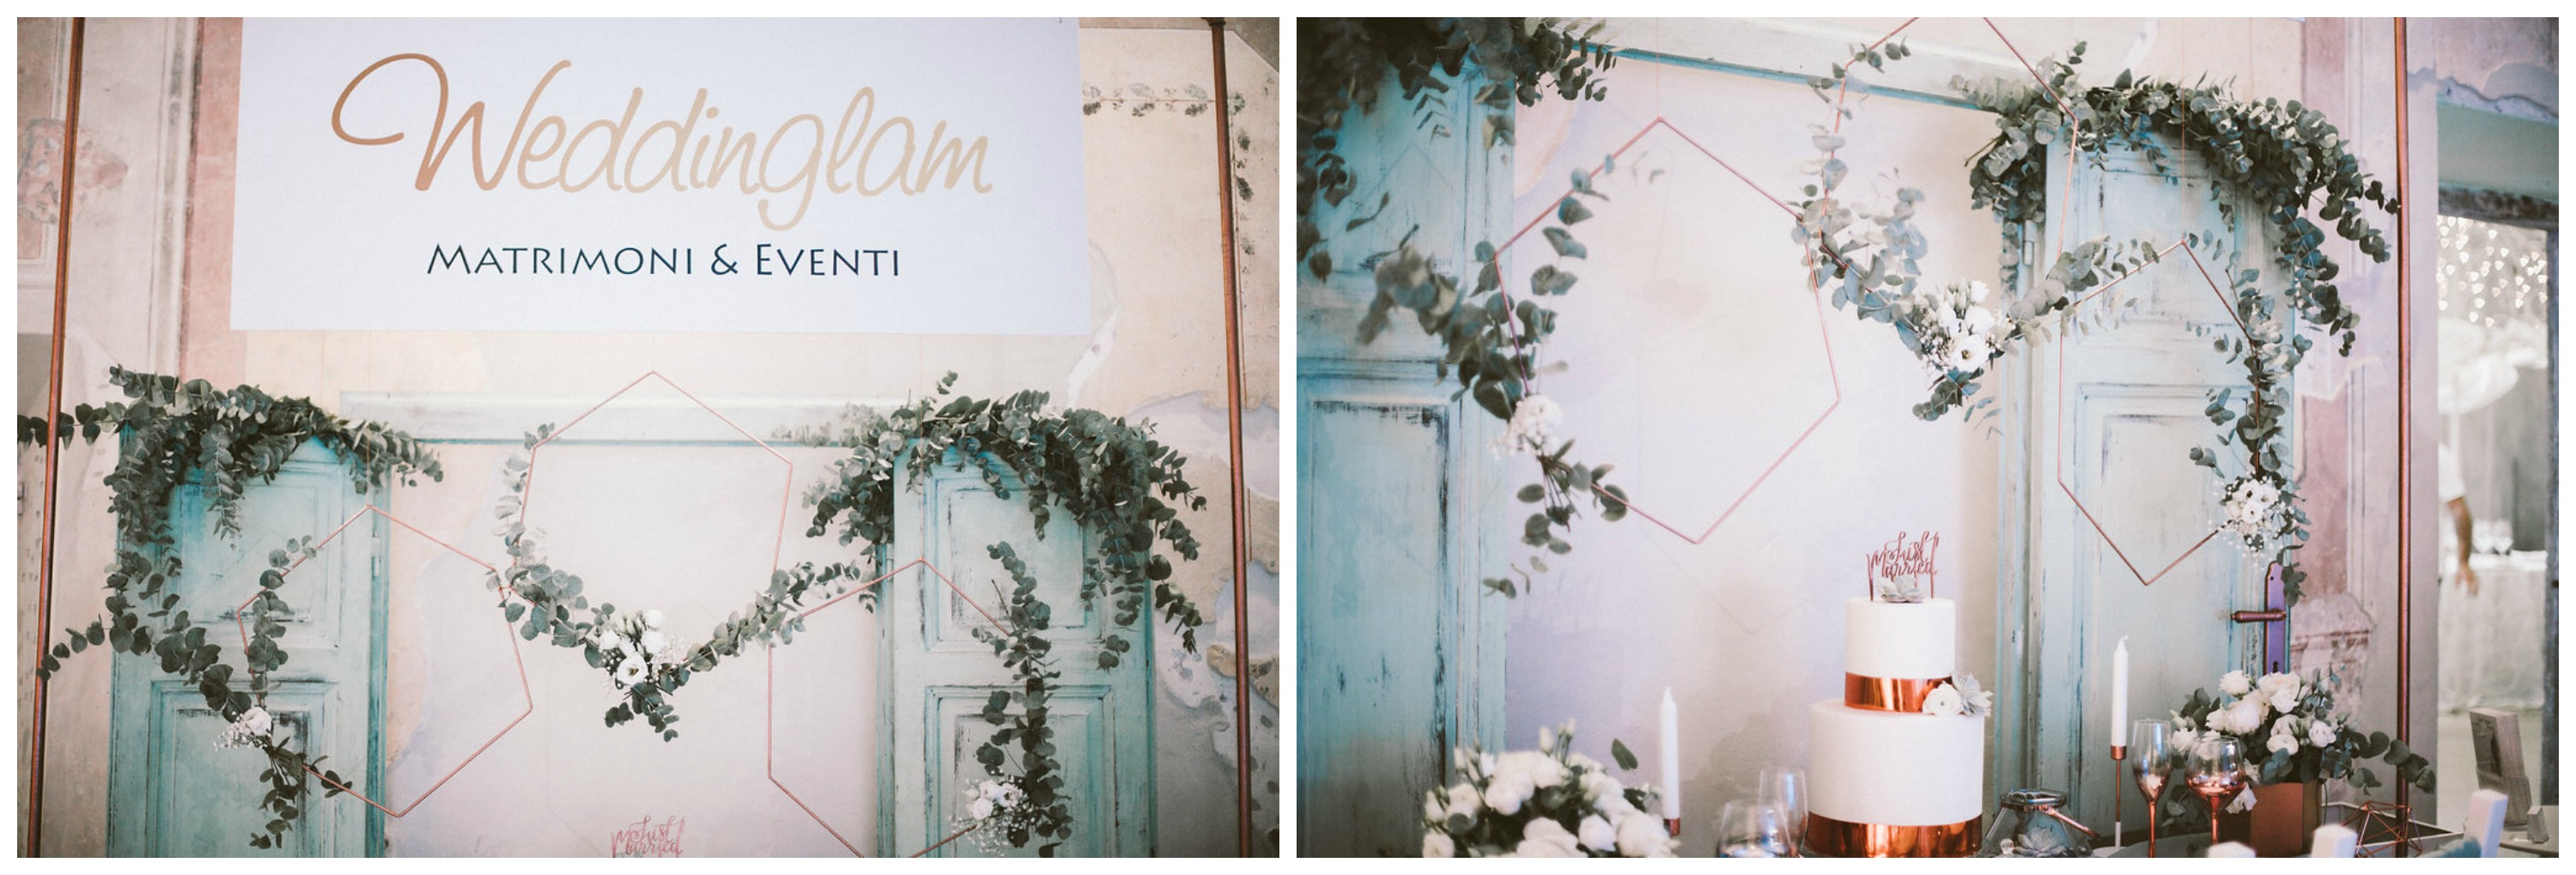 14-lucca-expo-sposi-stand-weddinglam